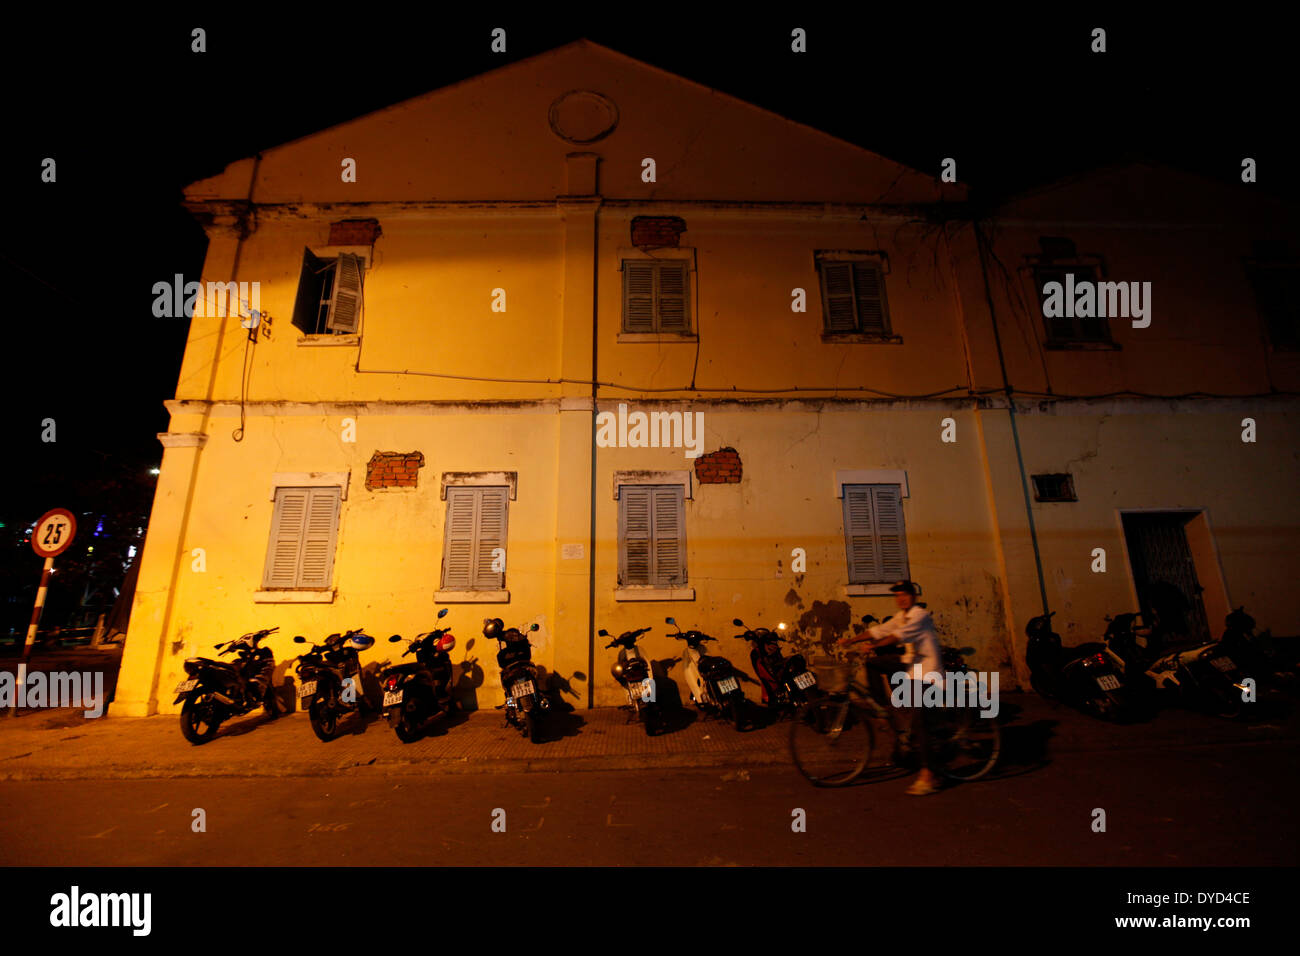 Motorcycles are parked at an old building in Sa Dec, Vietnam - Stock Image